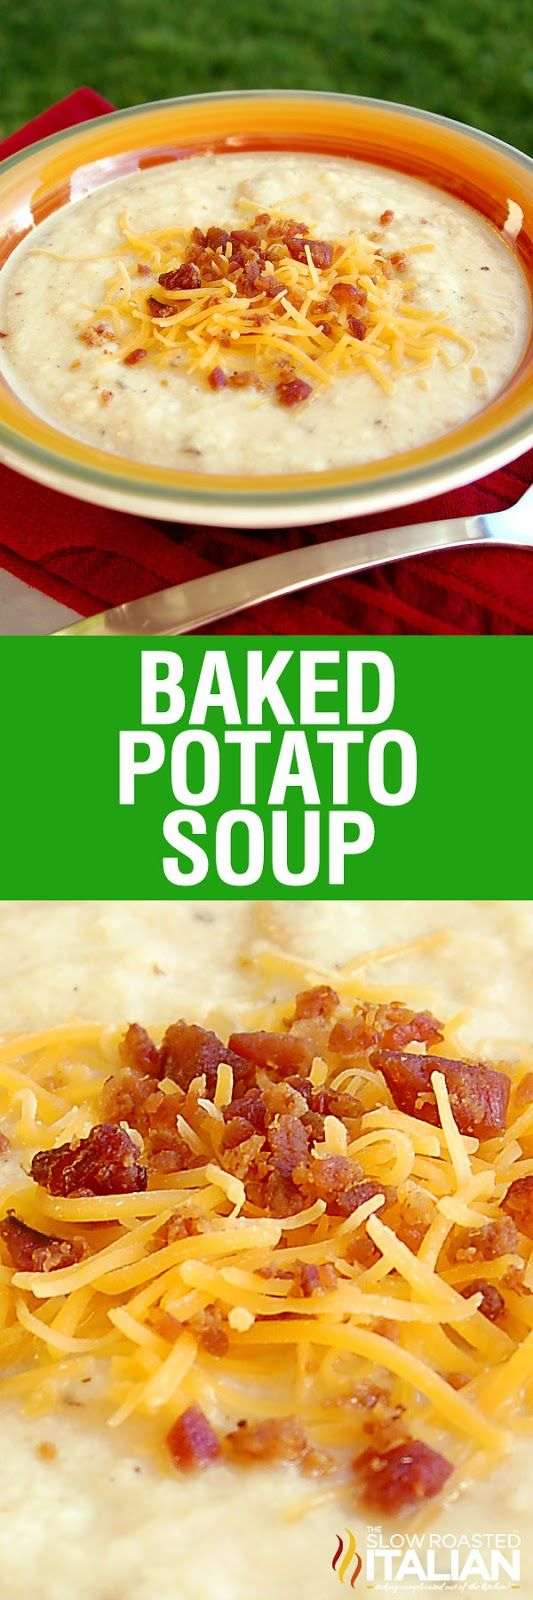 Baked Potato Soup is rich and creamy and has all your favorite potato fixins